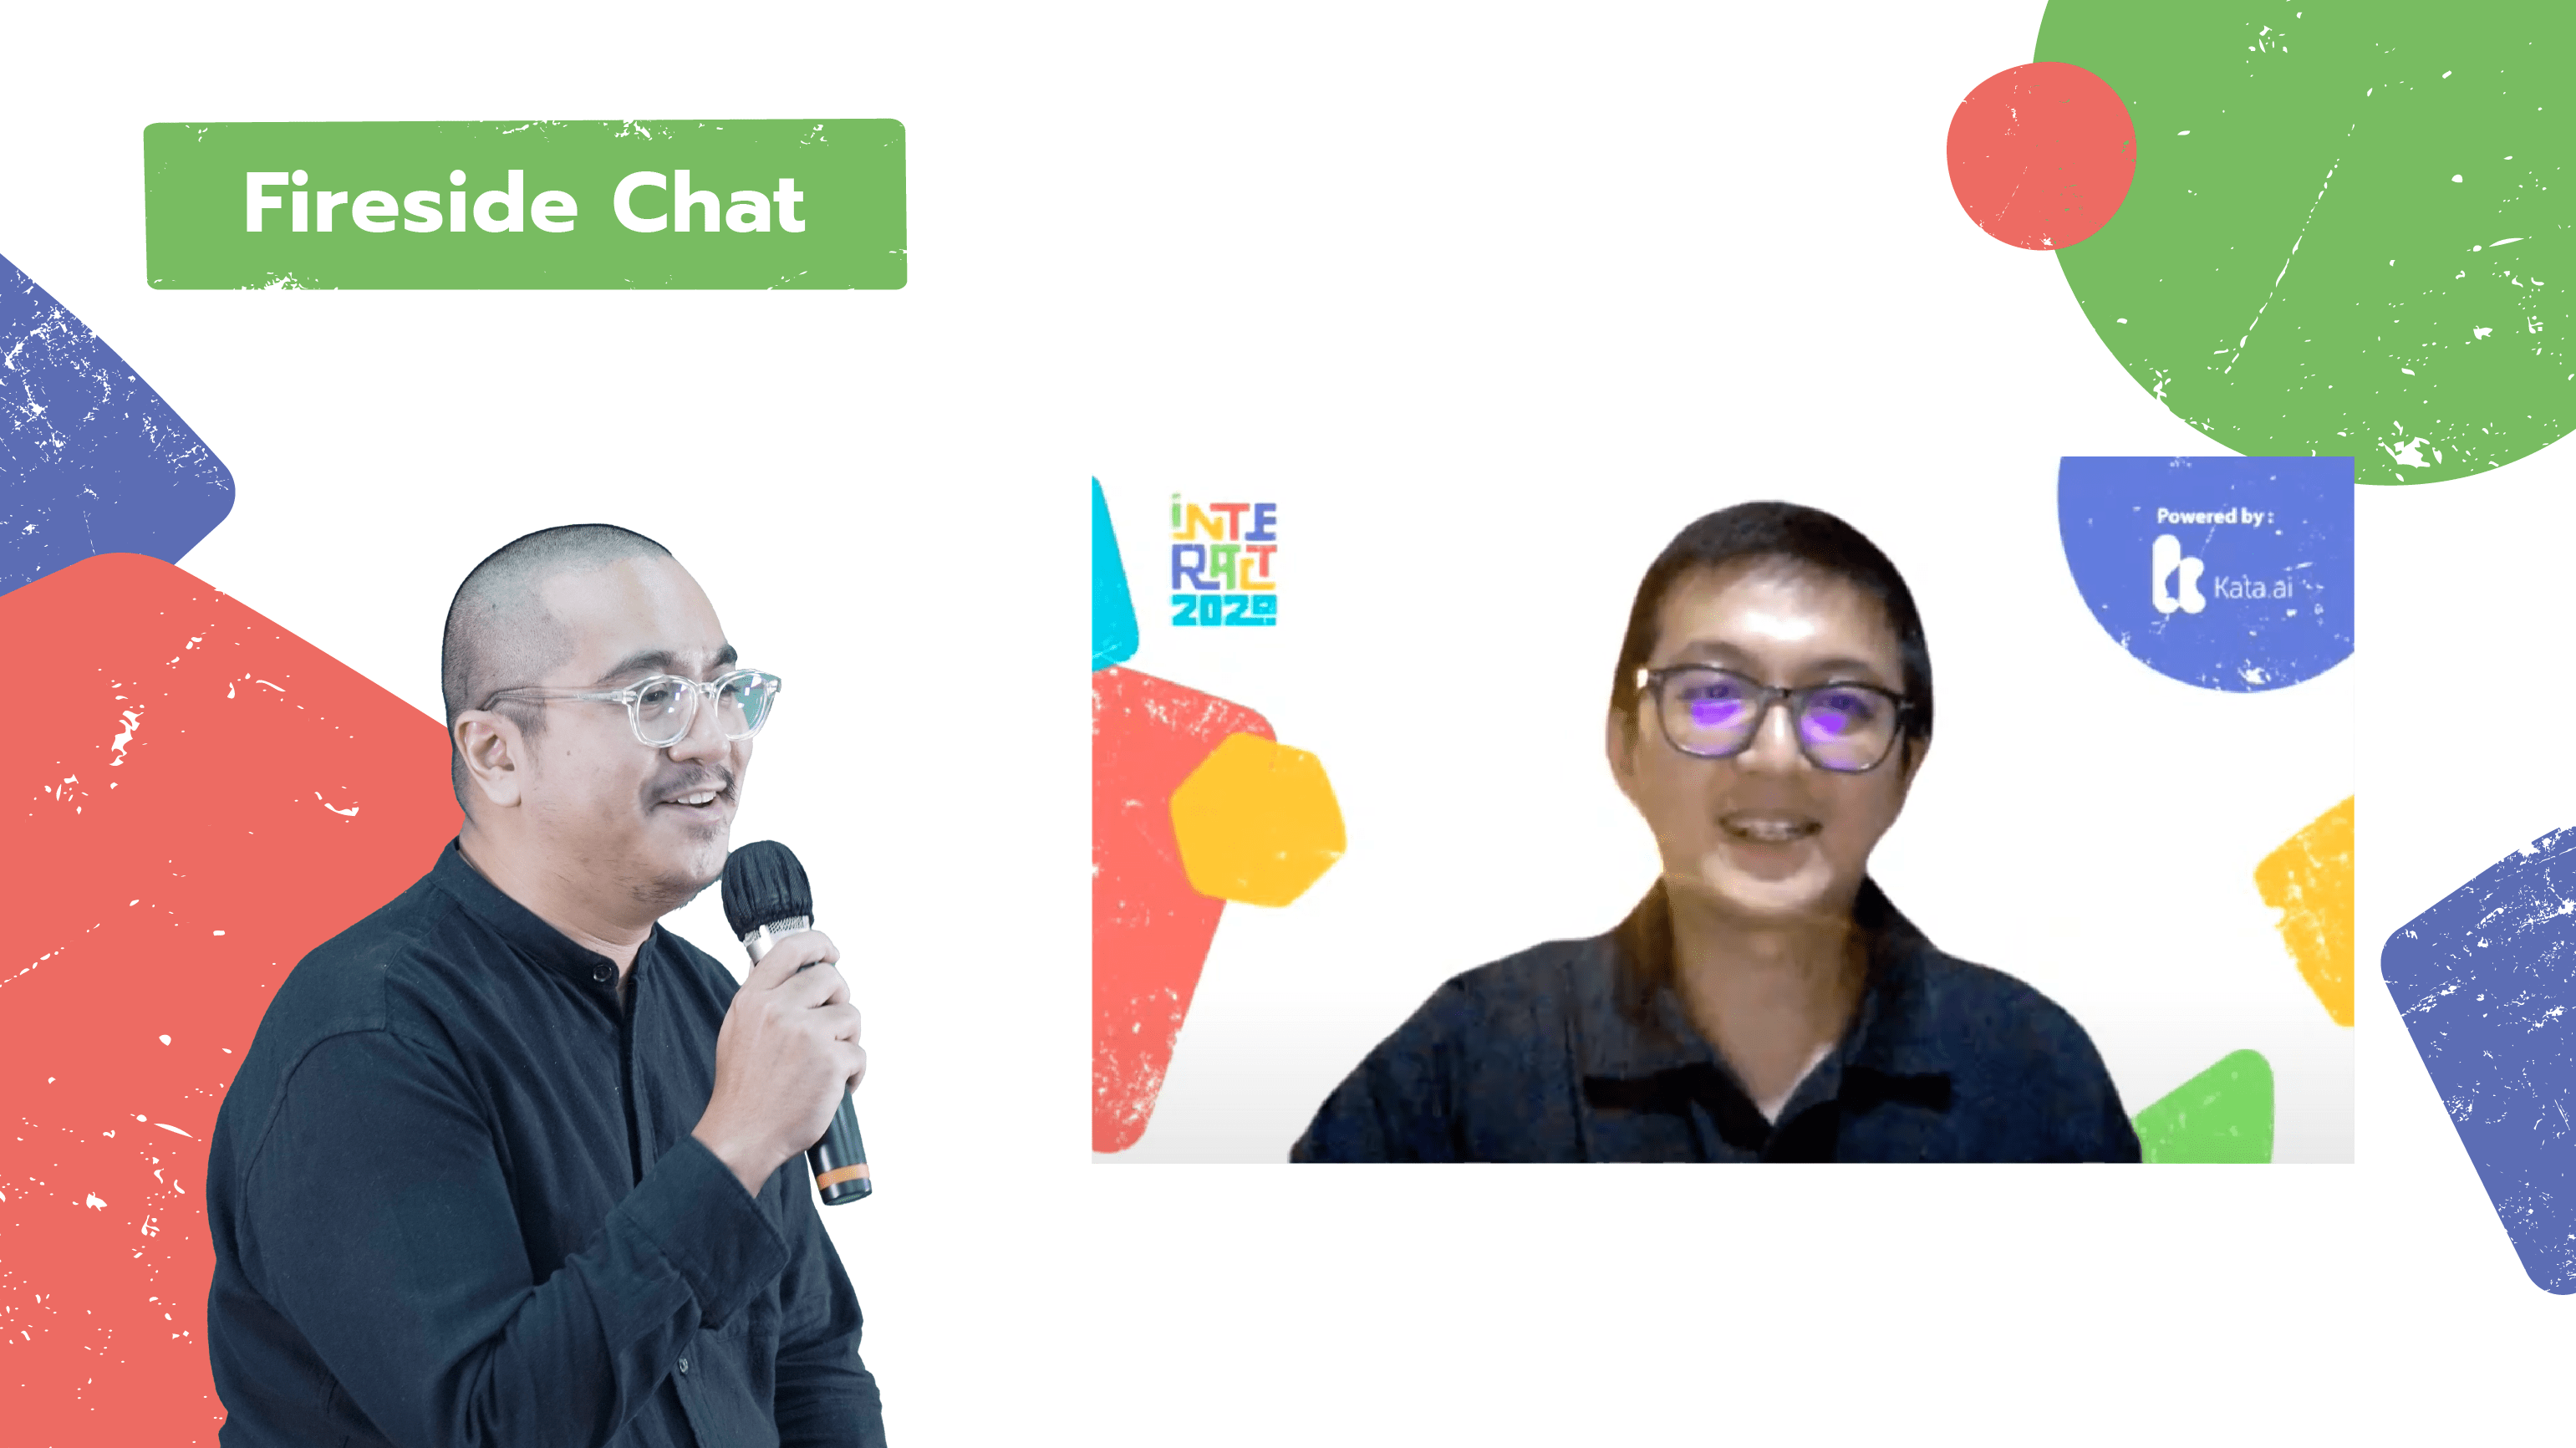 In INTERACT 2020's fireside chat session, Kata.ai CMO Reynir Fauzan discussed about startup innovators in Indonesia paving the way for many breakthroughs and digital initiatives with Amazon Web Service (AWS) Indonesia Country General Manager Gunawan Susanto.